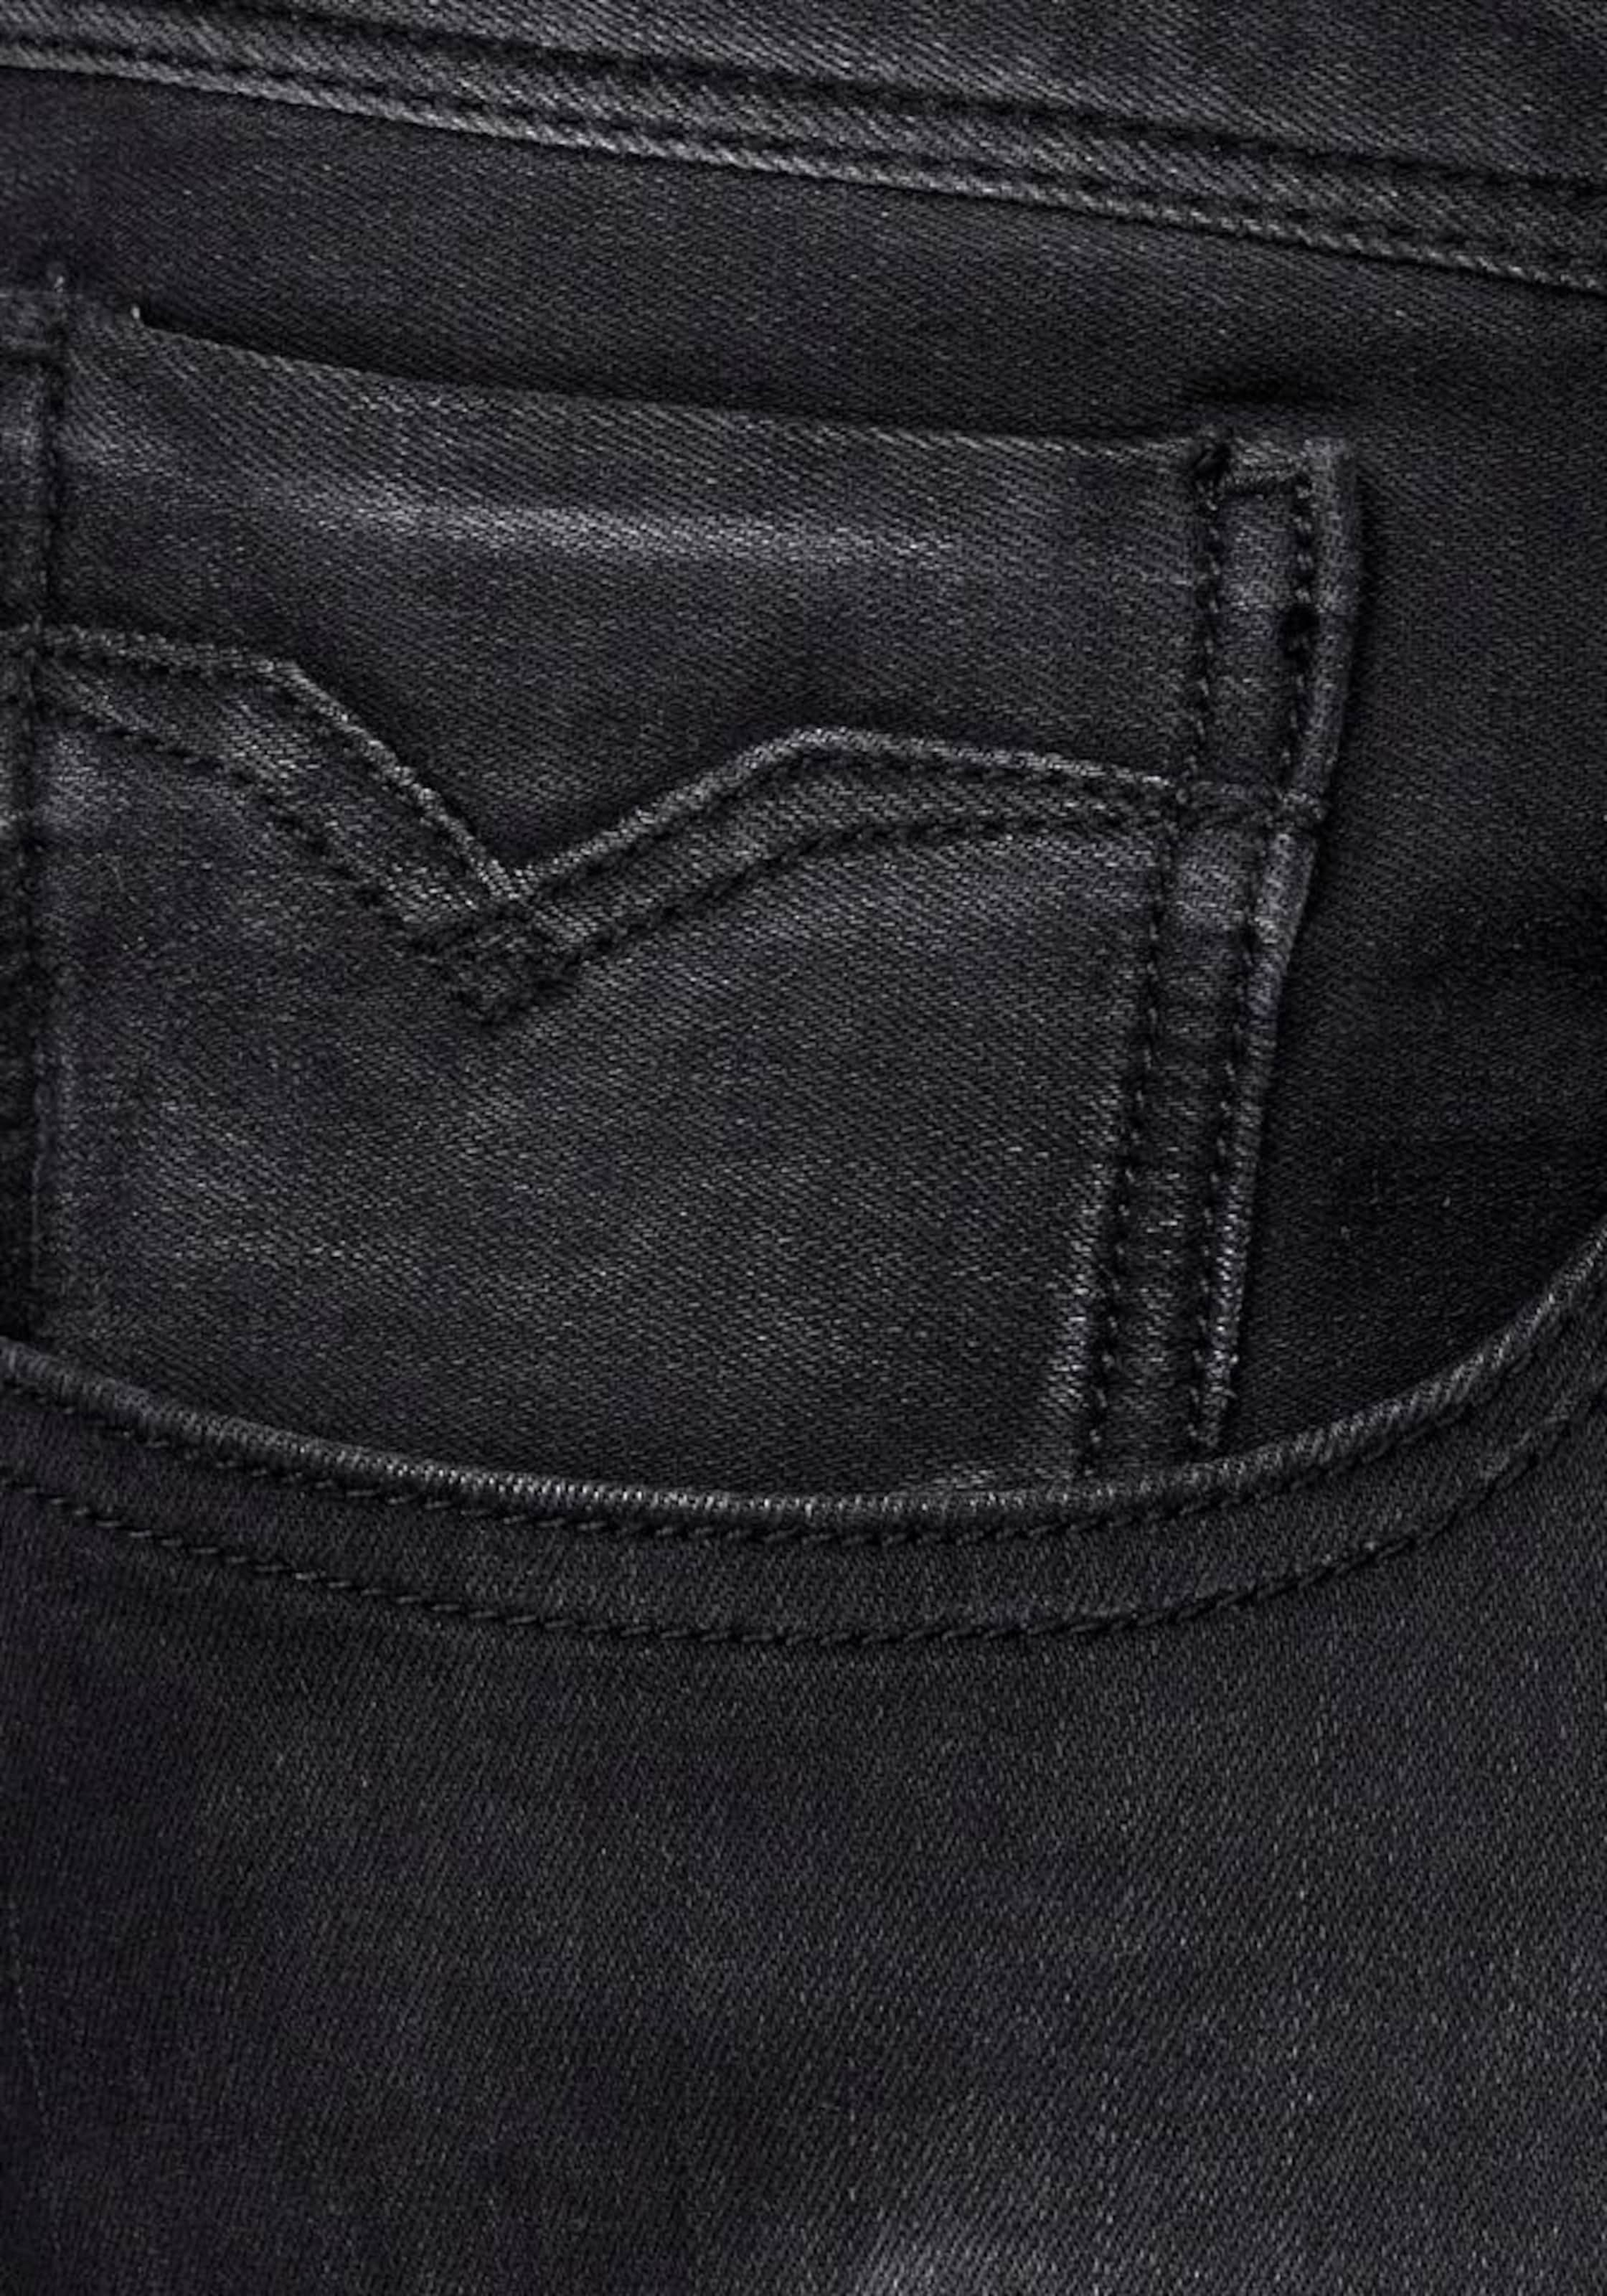 jeans 'anbass' In fit Schwarz Slim Replay CrdxoWBe